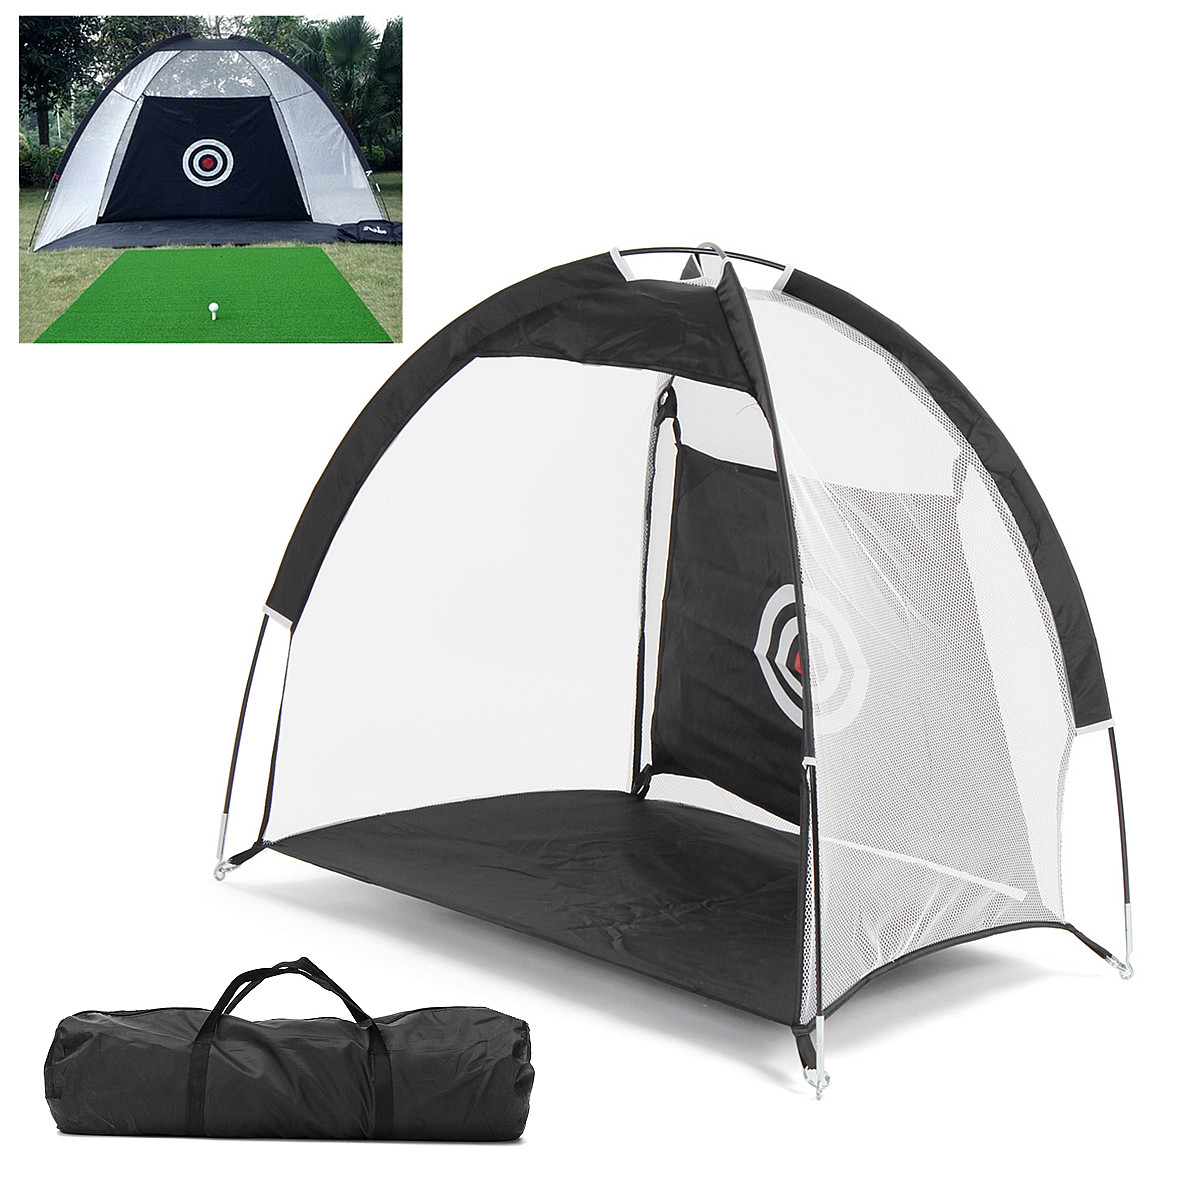 Golf Hitting Cage Practice Net Trainer 3m/1m Foldable Black 210D Encryption Oxford Cloth+Polyester Durable sturdy construction